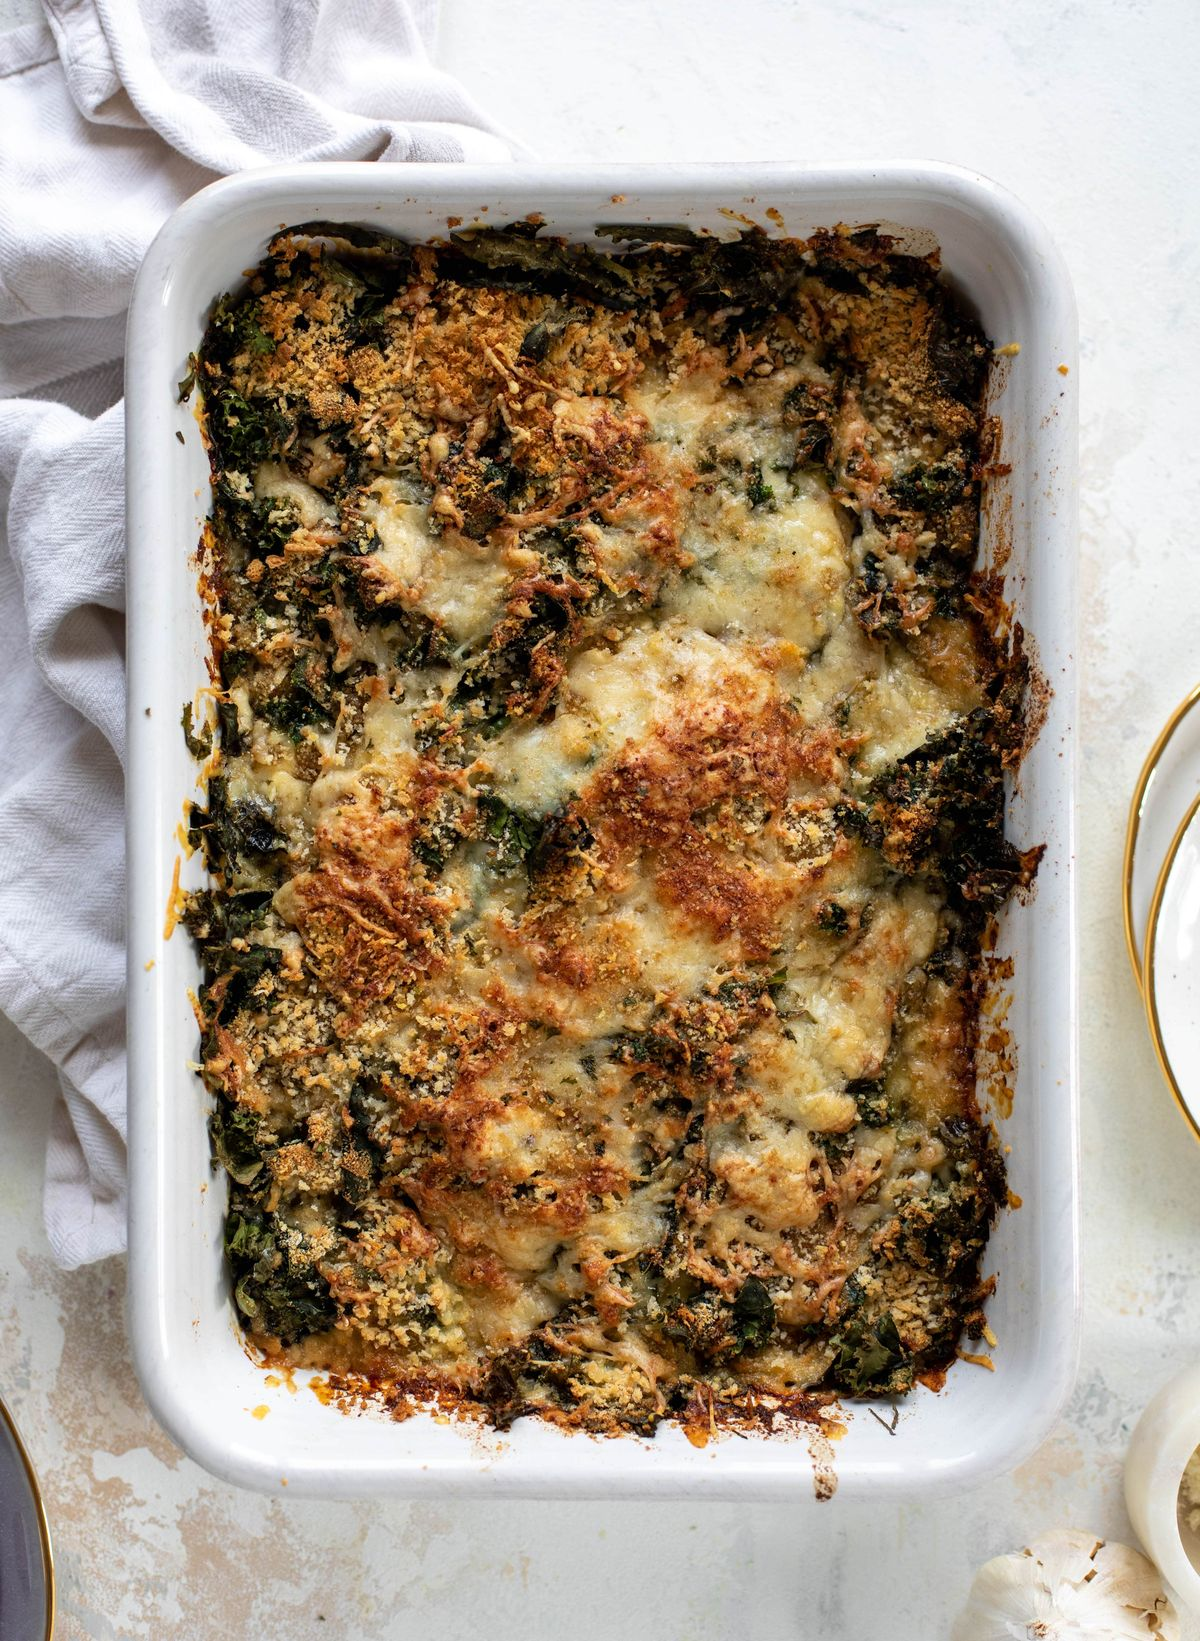 This double kale gratin has two kinds of kale, three kinds of cheese, cream and crunchy breadcrumbs. It will be your new favorite side dish!